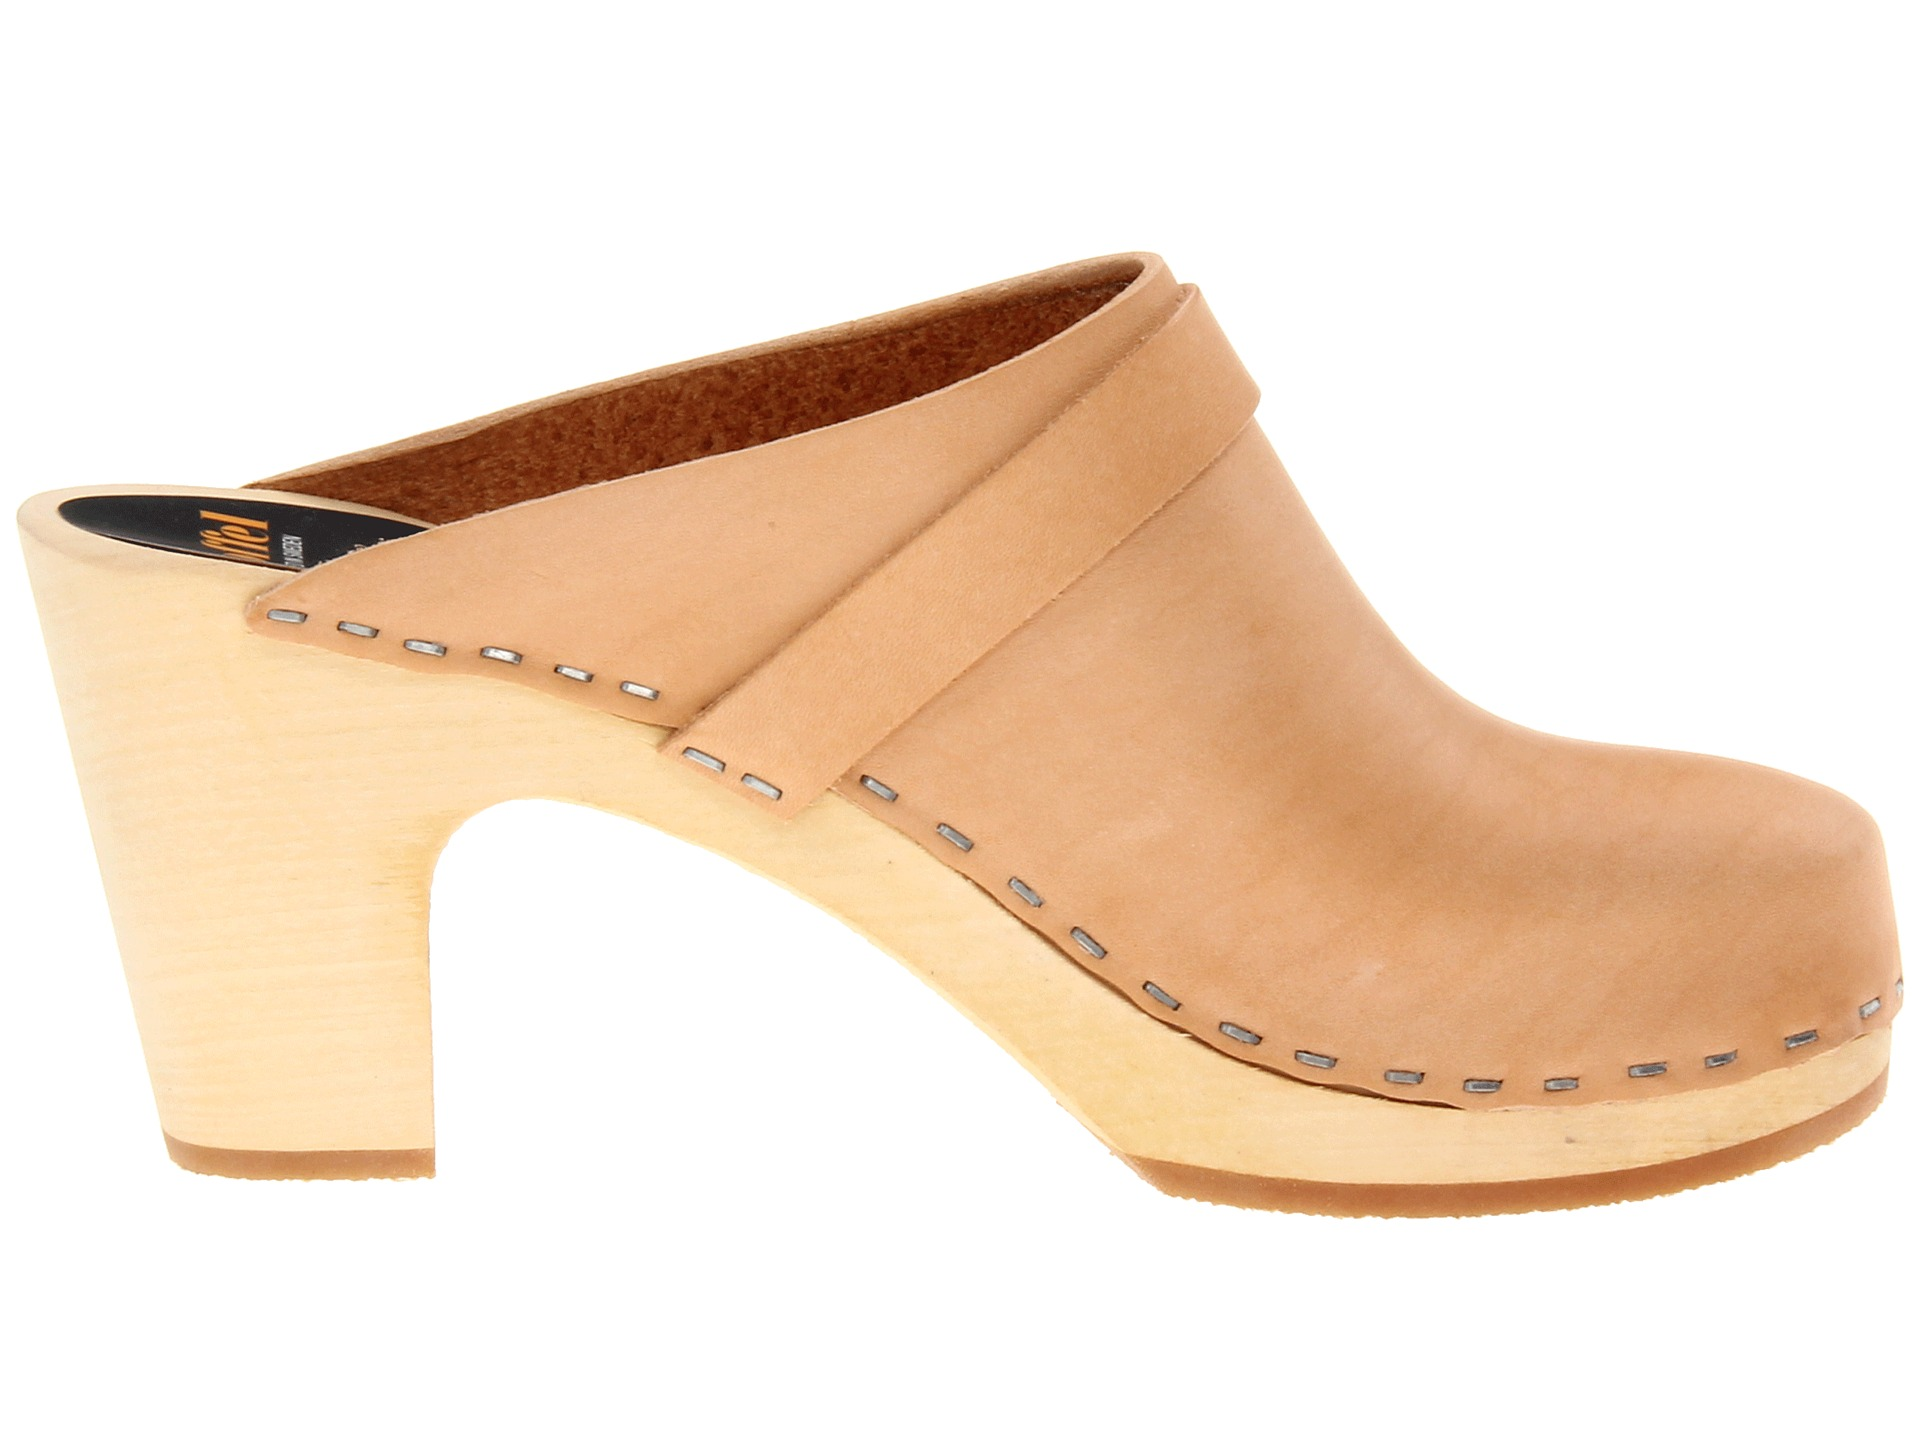 Swedish Hasbeens clog—Top 5 of the week